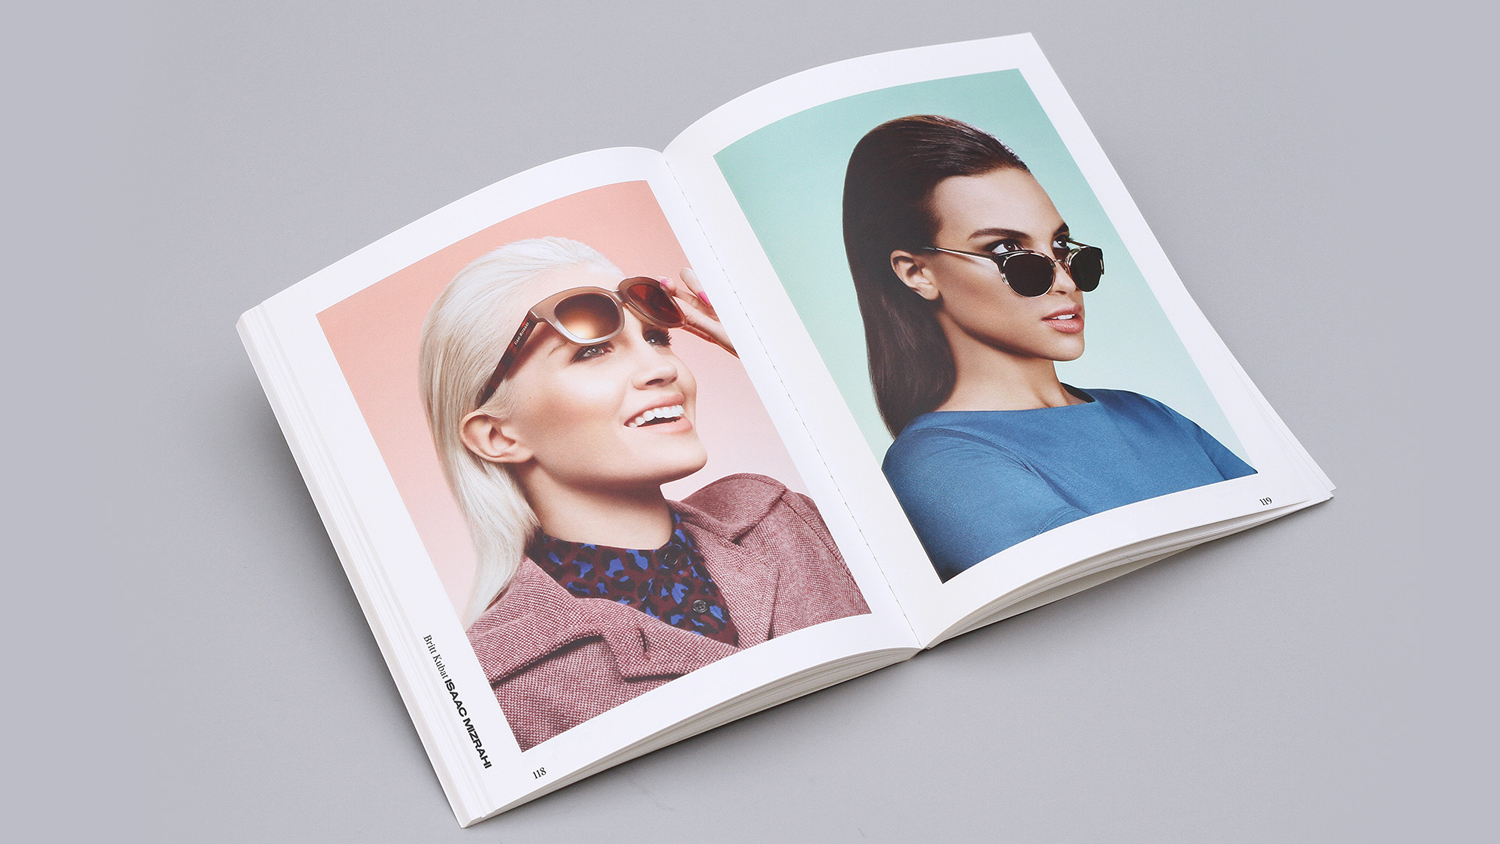 Brand identity, custom typeface and book layout by New York based graphic design studio DIA for boutique retouching business Bespoke